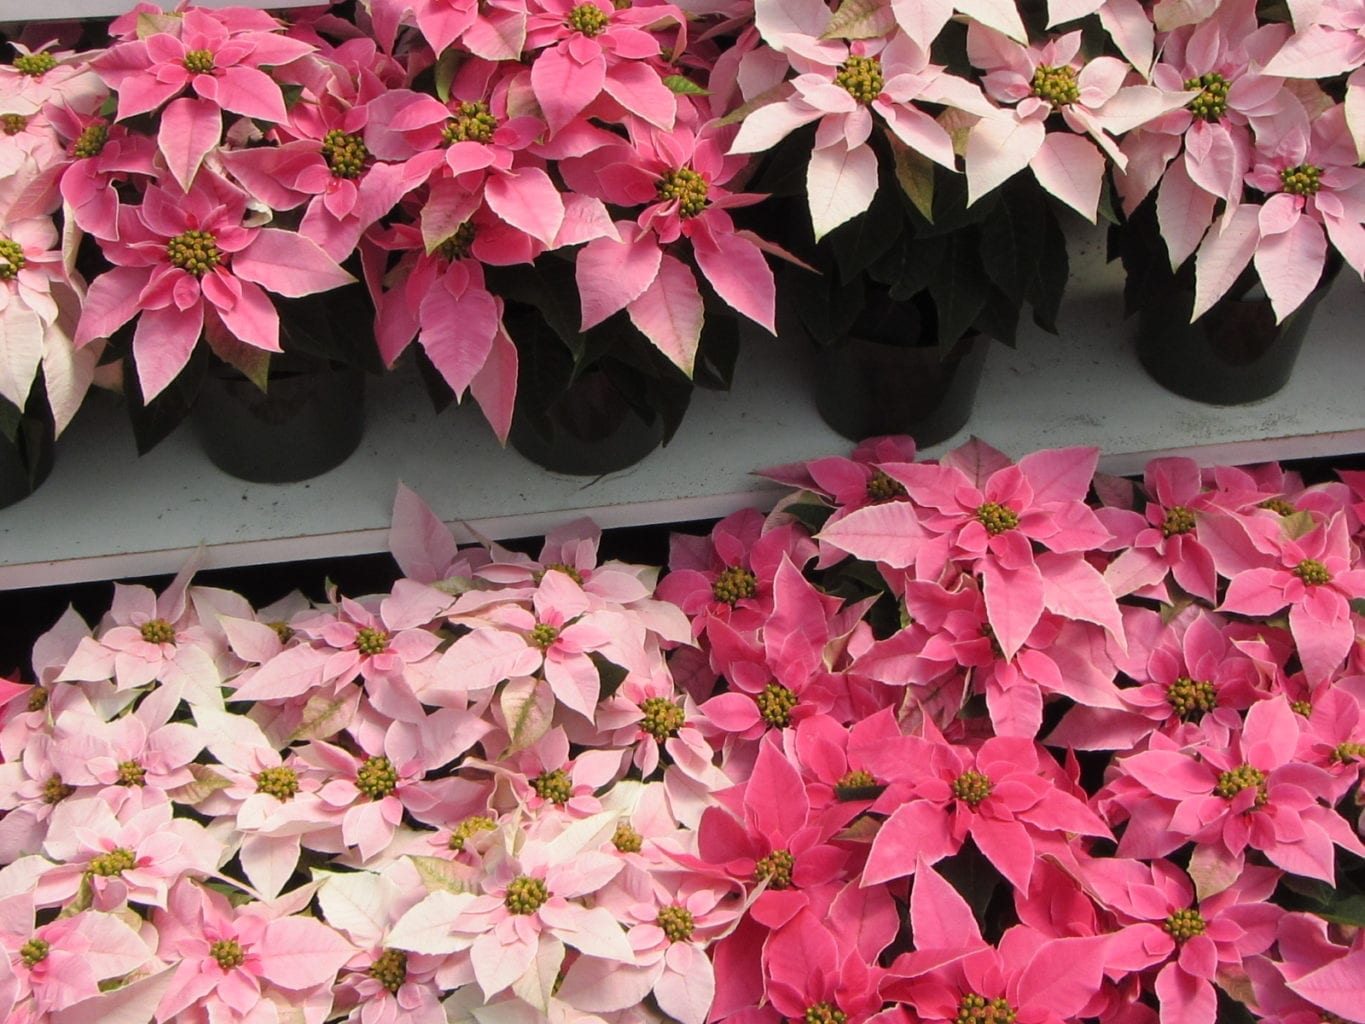 Caring For Your Poinsettia And Christmas Tree